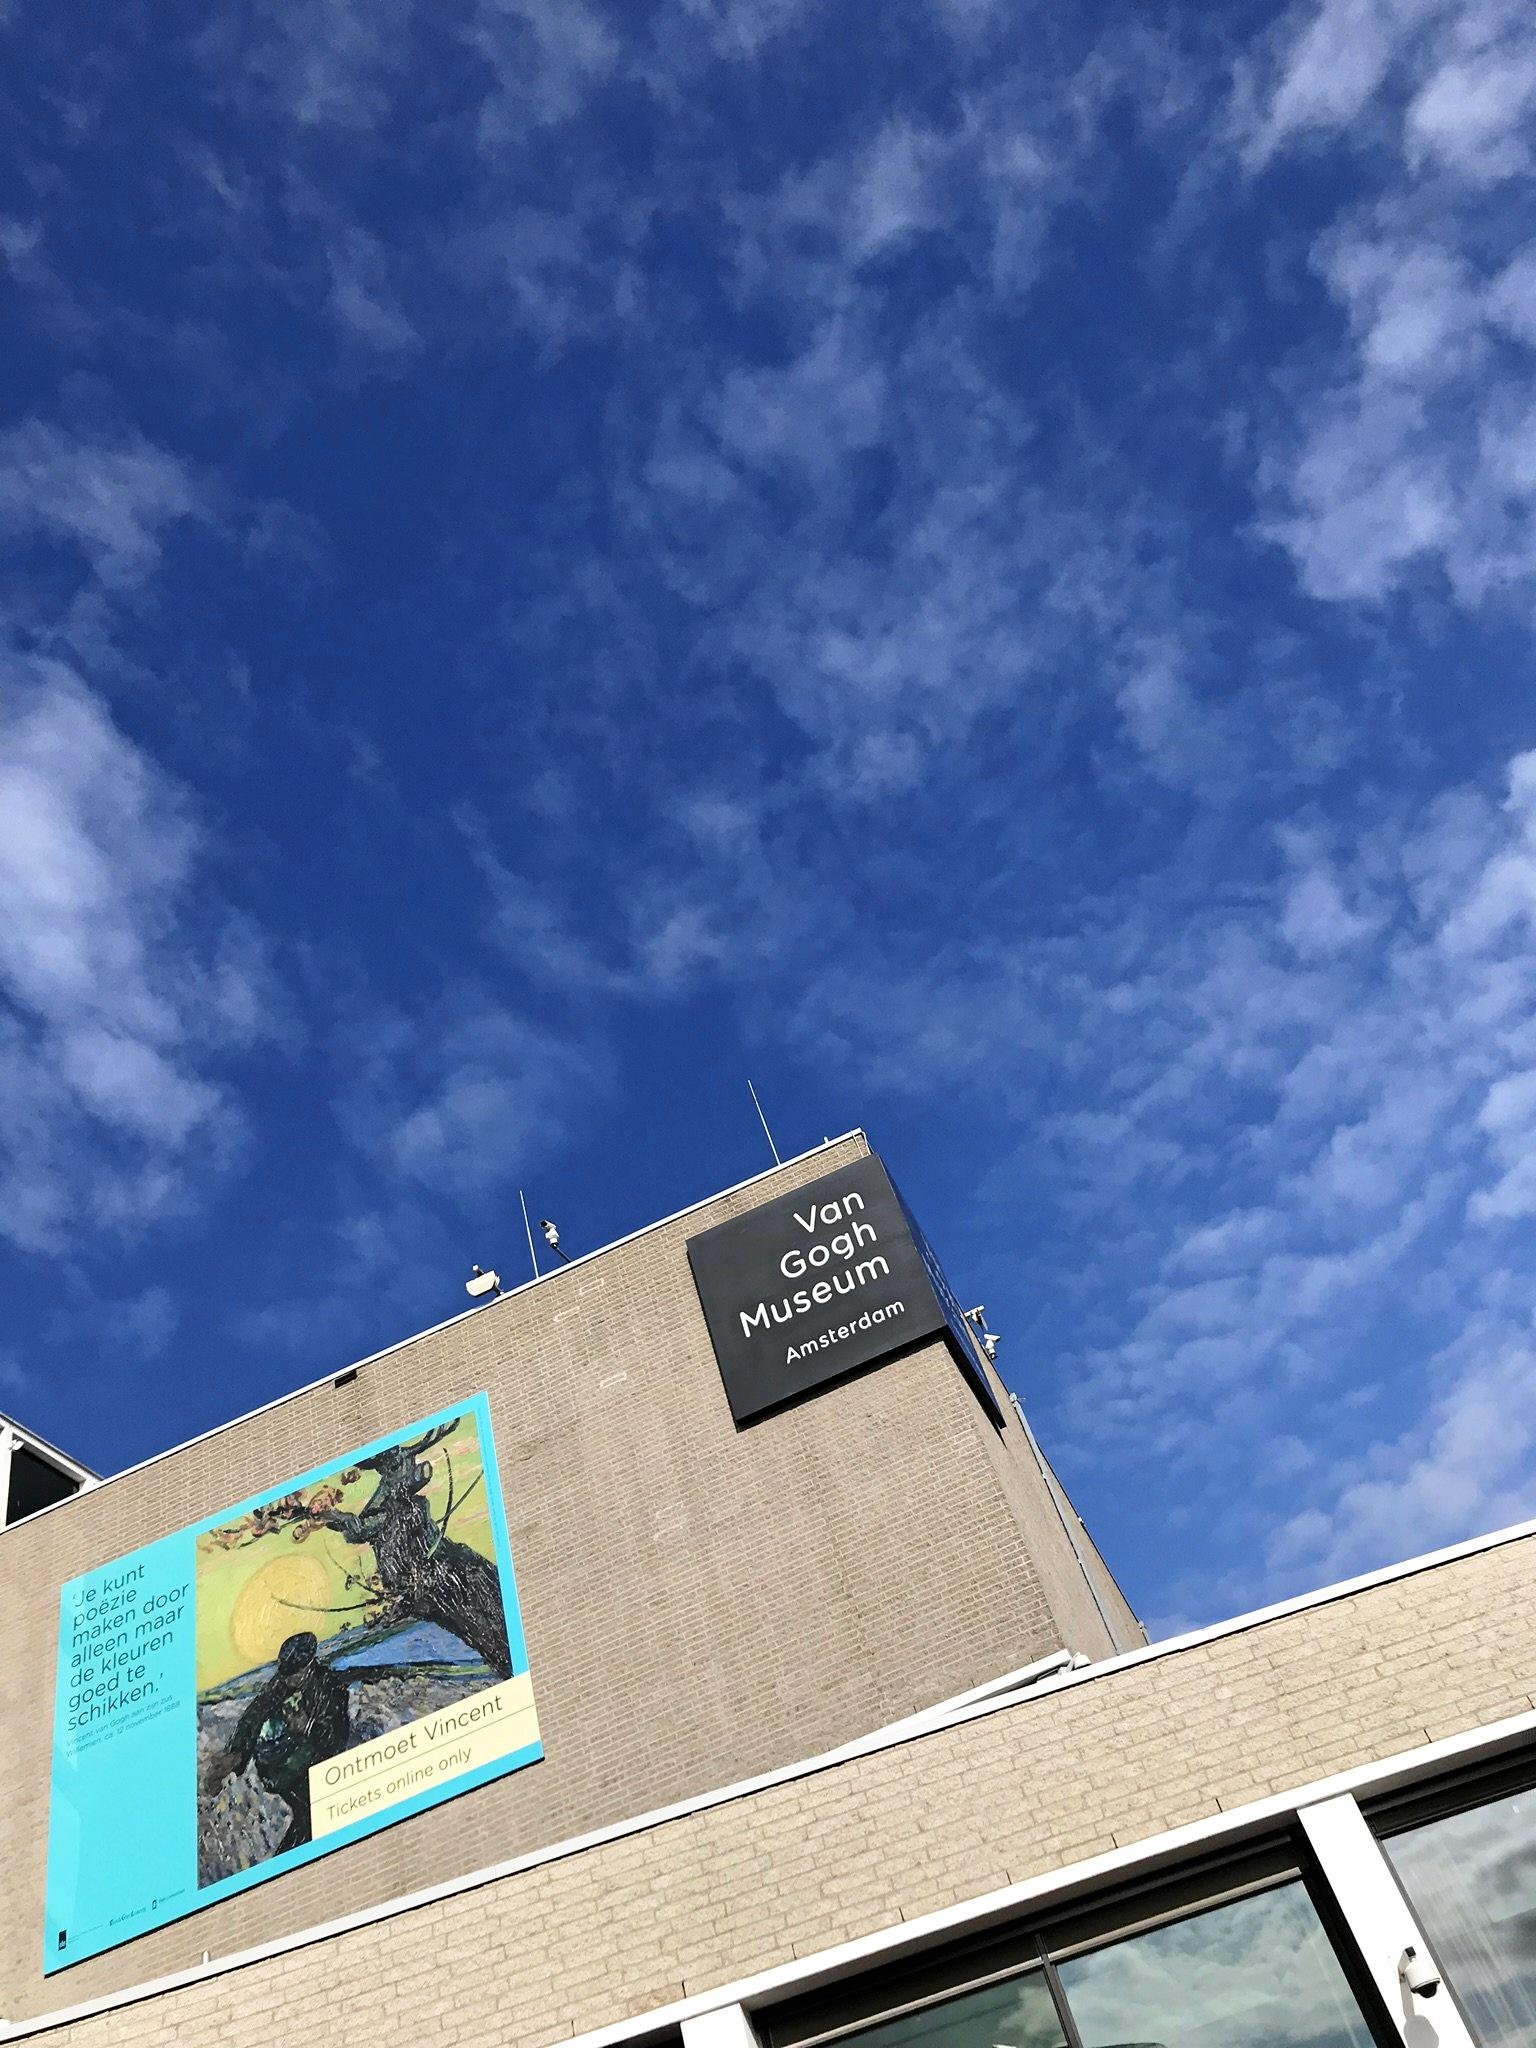 The Vincent Van Gogh Museum celebrates the special genius of one of the world's best-known artists.